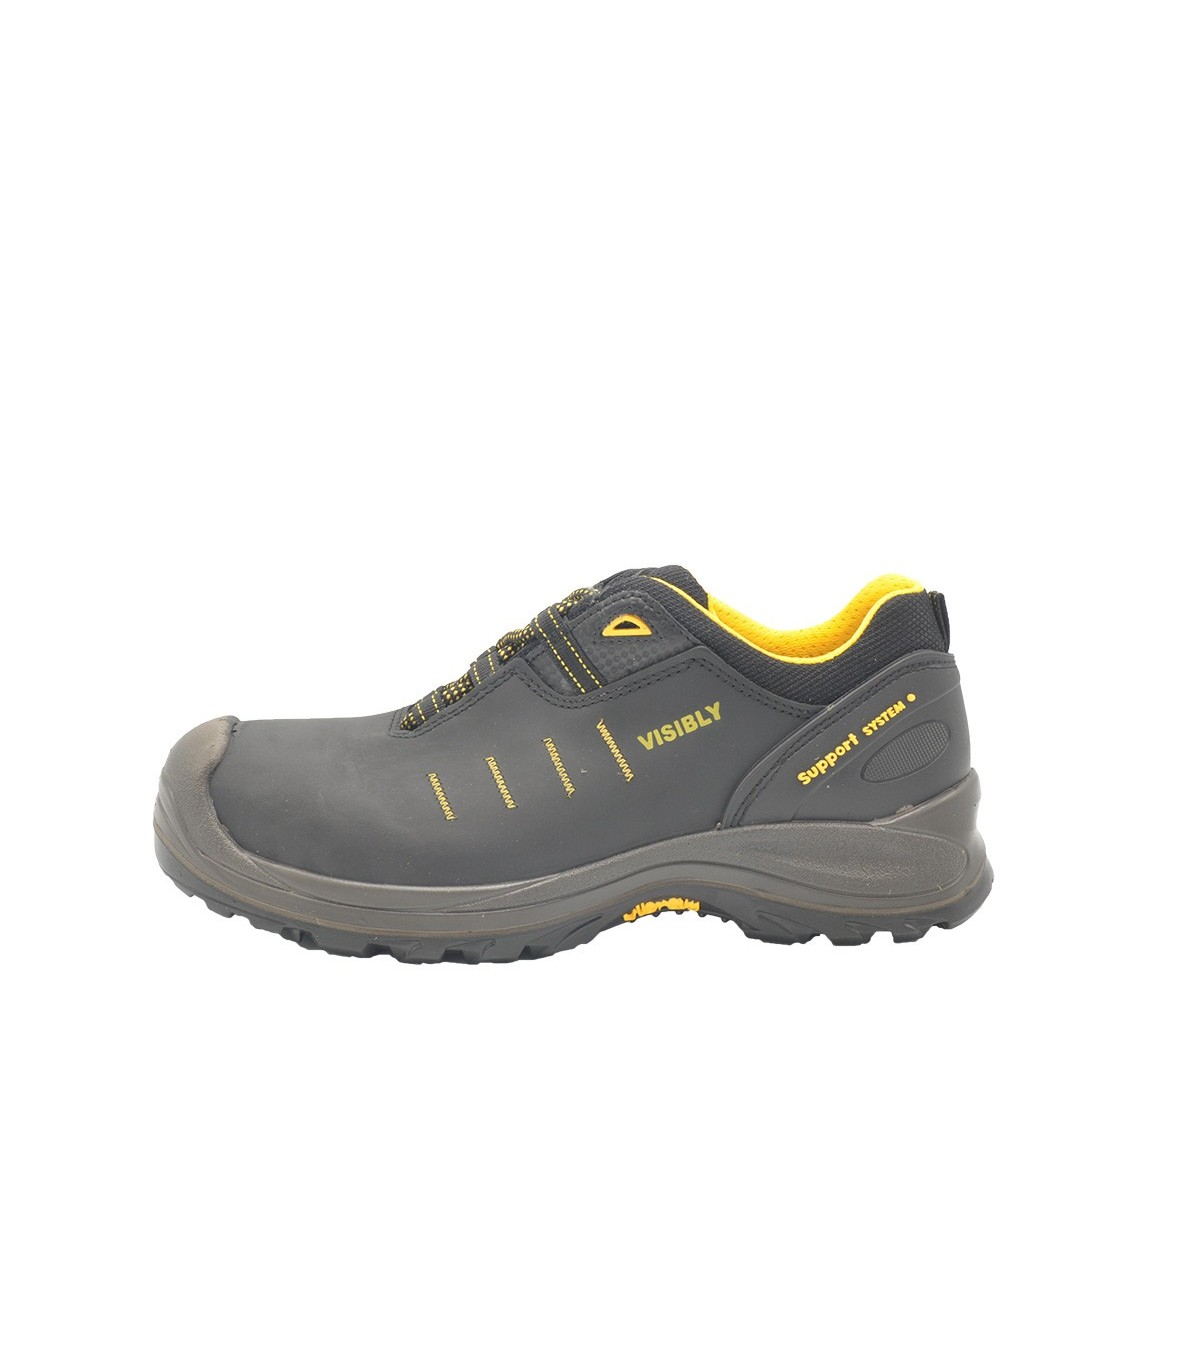 Xtreme Chaussure Basse Xtreme Visibly Basse Brune Chaussure Visibly VSzMUp